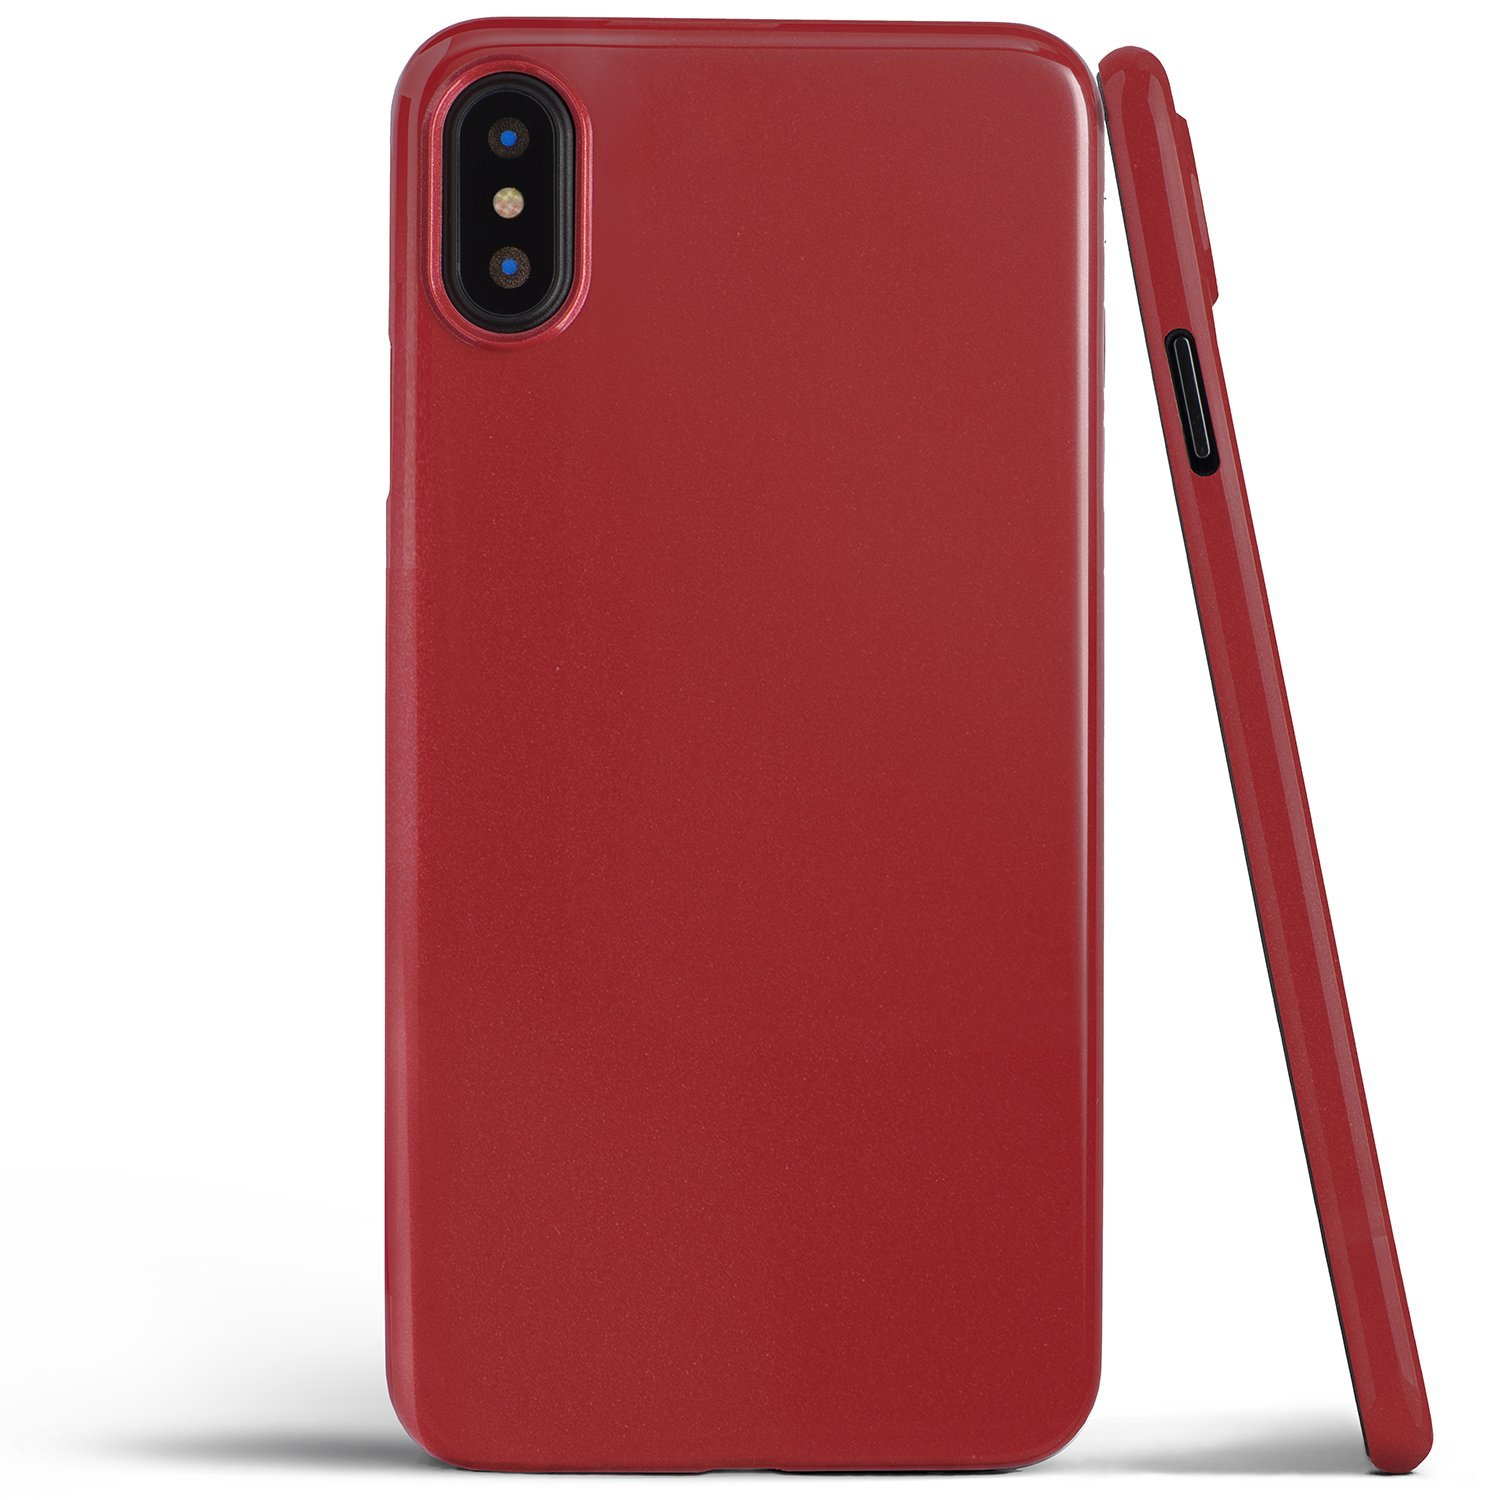 Case Für Iphone Best Cases For Iphone X In 2019 Imore